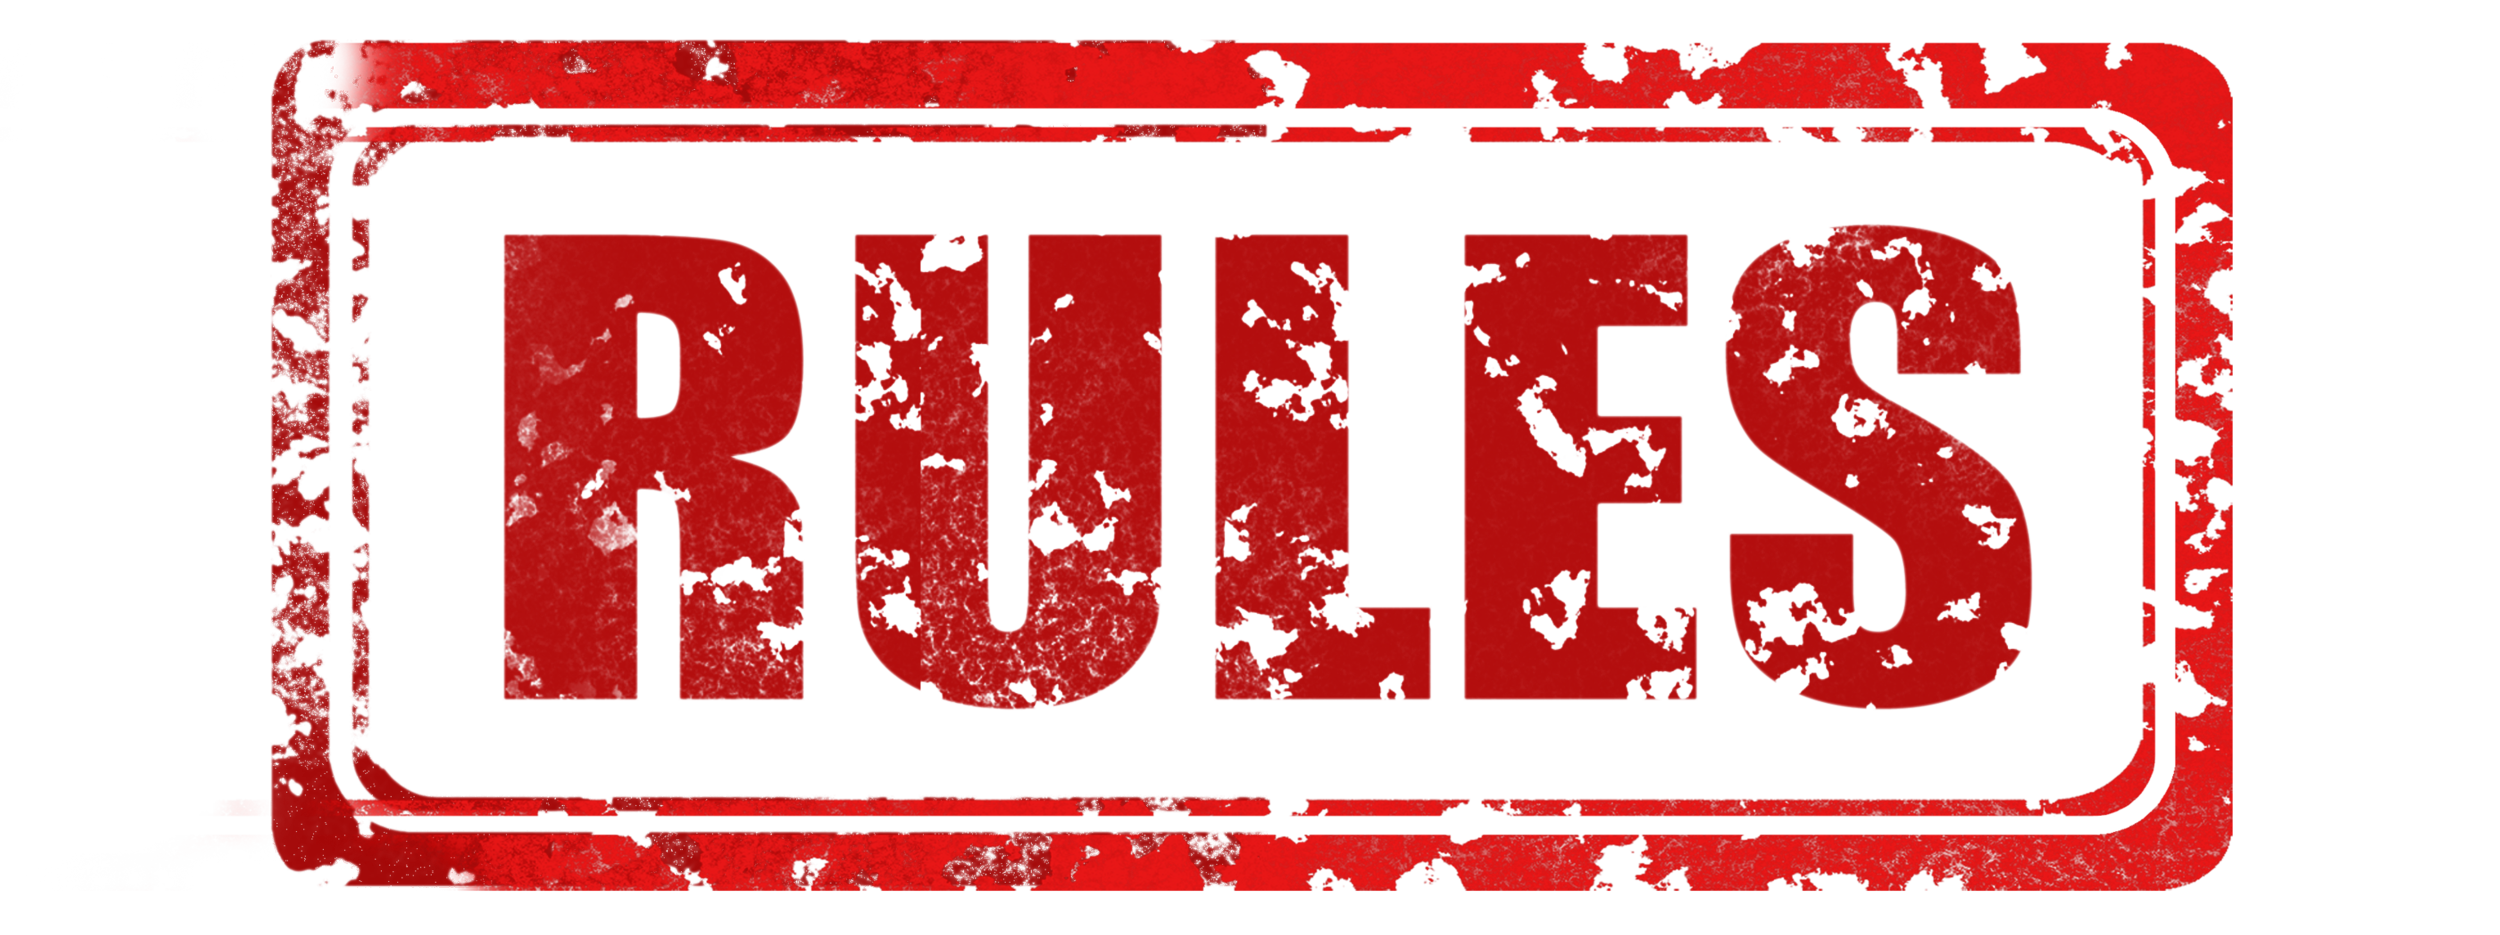 Rules stamp image